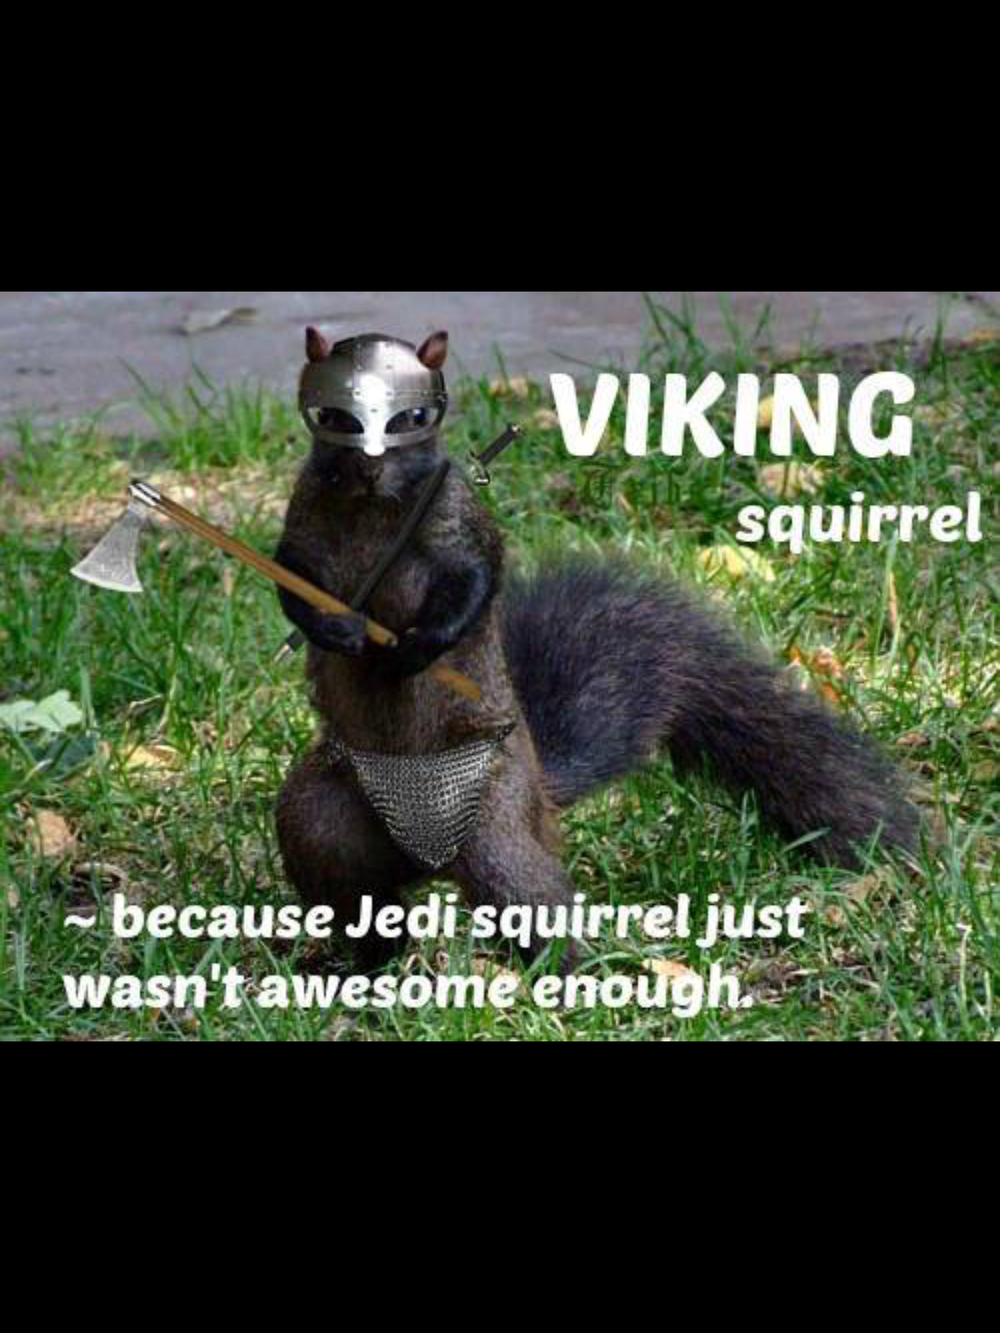 One would not want a viking squirrel as a nemesis. That could get ugly fast.